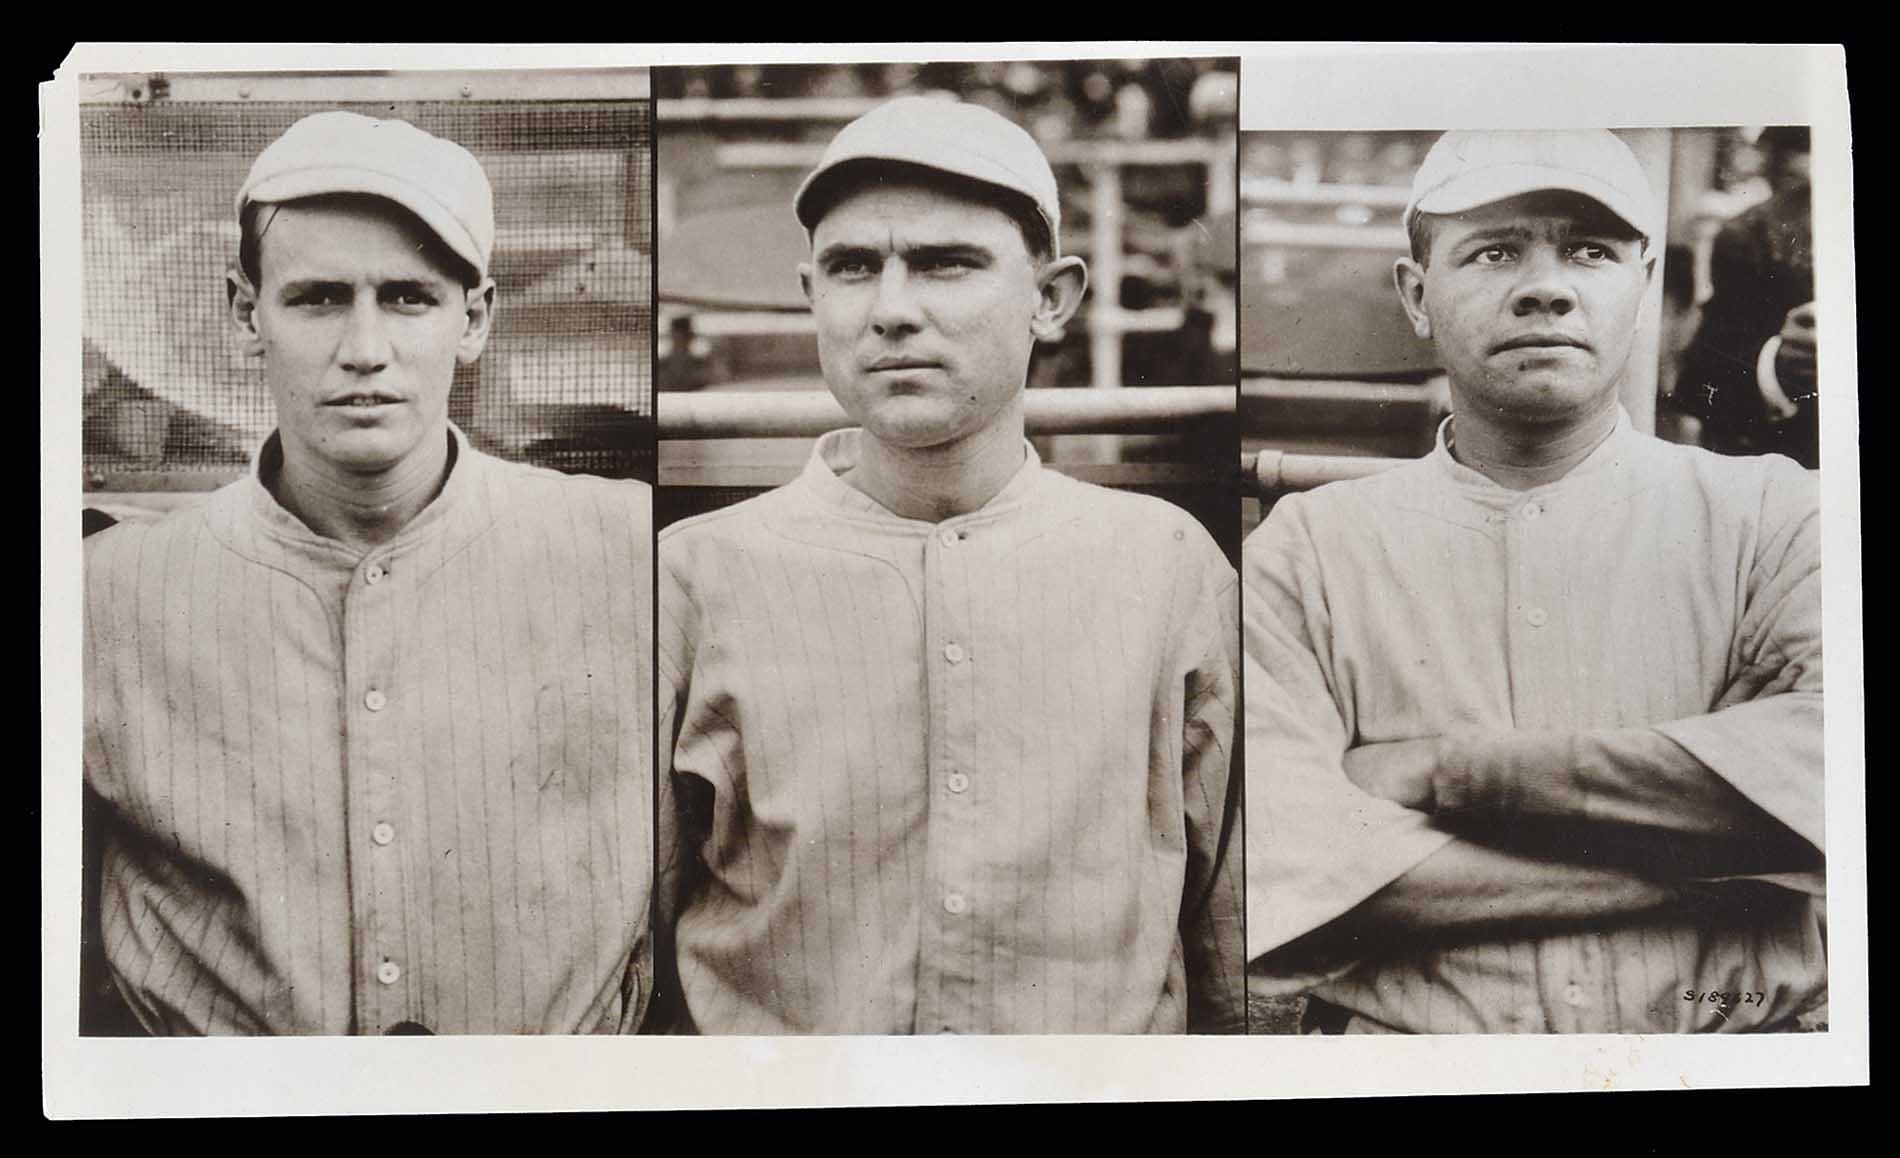 1915 Underwood & Underwood composite photo of Red Sox players Joe Wood, Ernie Shore and Babe Ruth. Taken at Fenway Park.